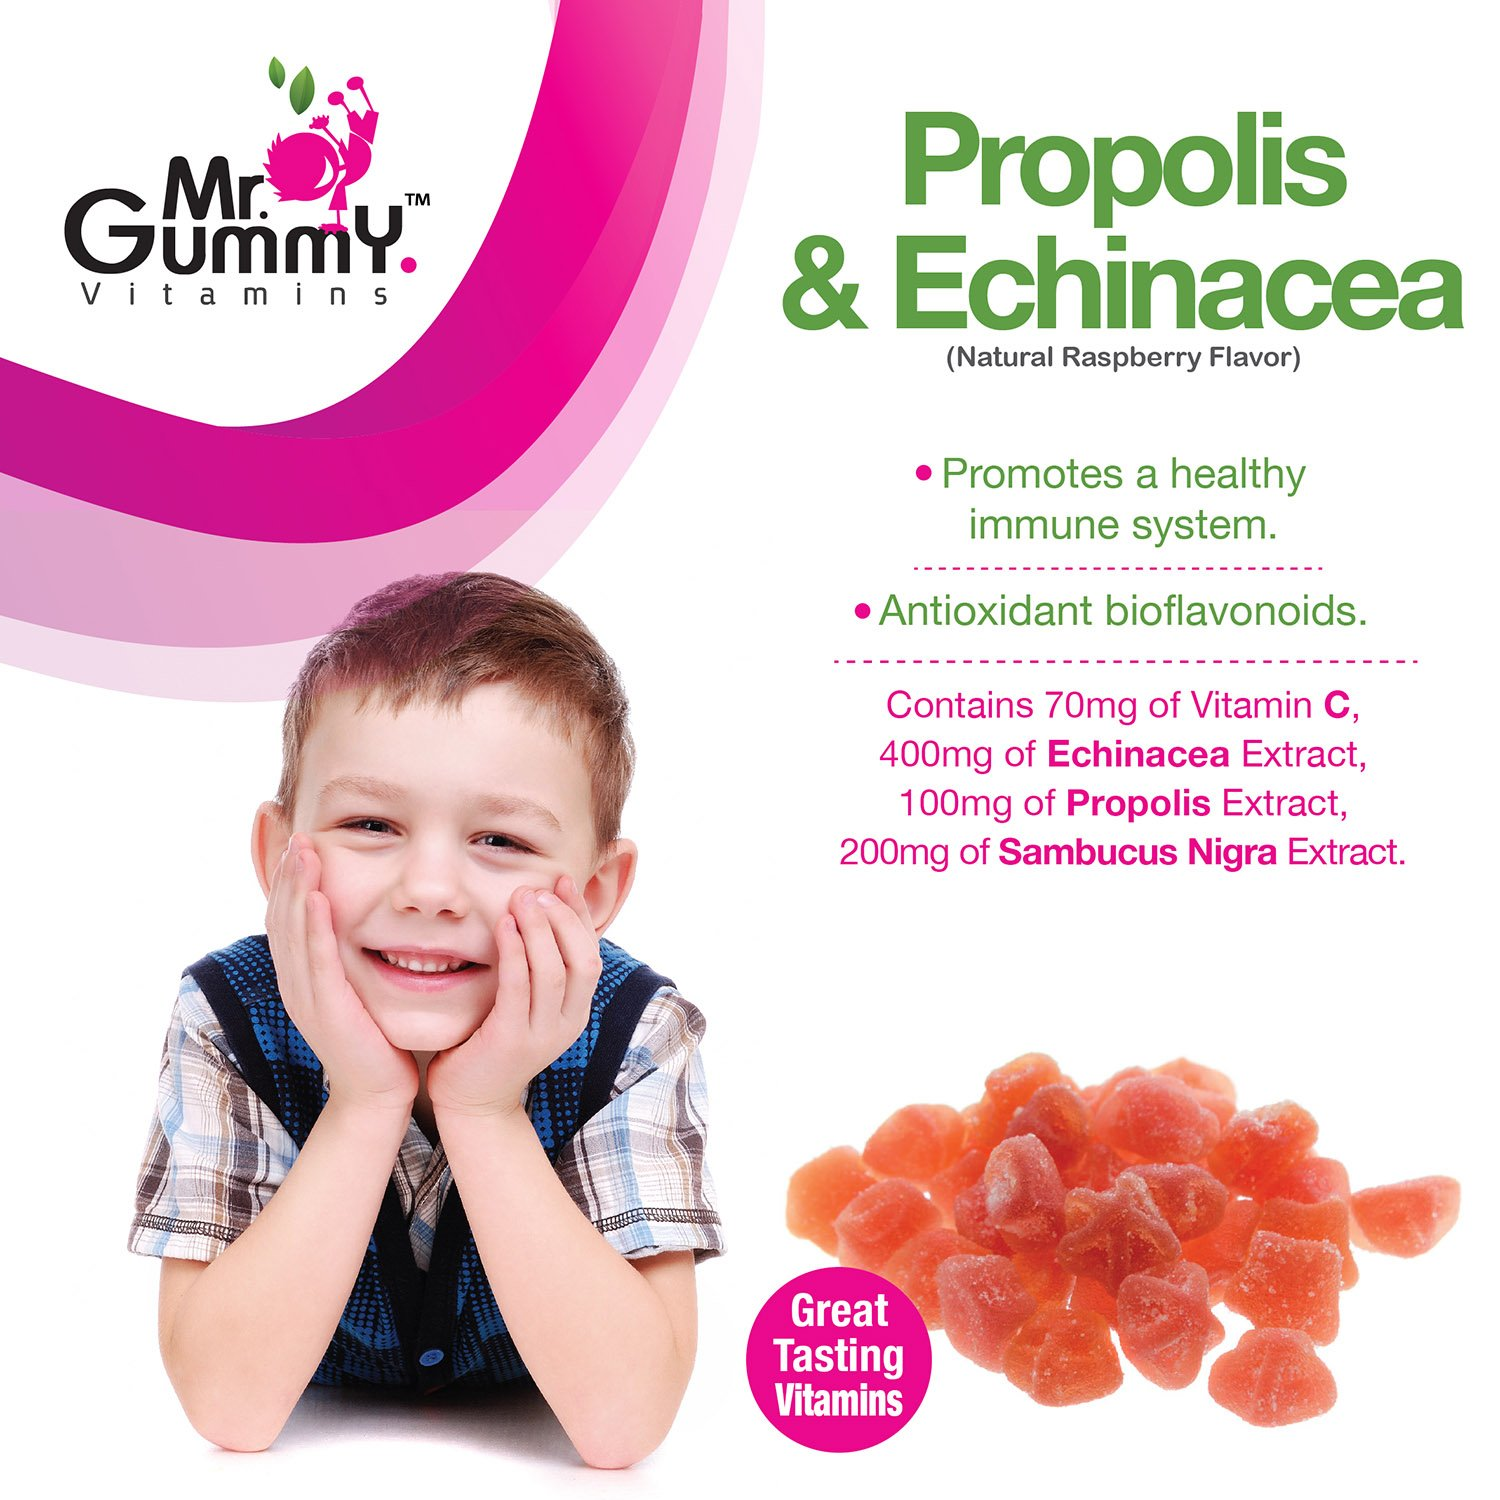 Mr Gummy Vitamins Propolis Echincea Supplement Natural Raspberry Sambucus, Elderberry, Propolis Extract, Vitamin C Healthy Immune Support System 150 Gummies, 75-Day Supply Kids Vitamins